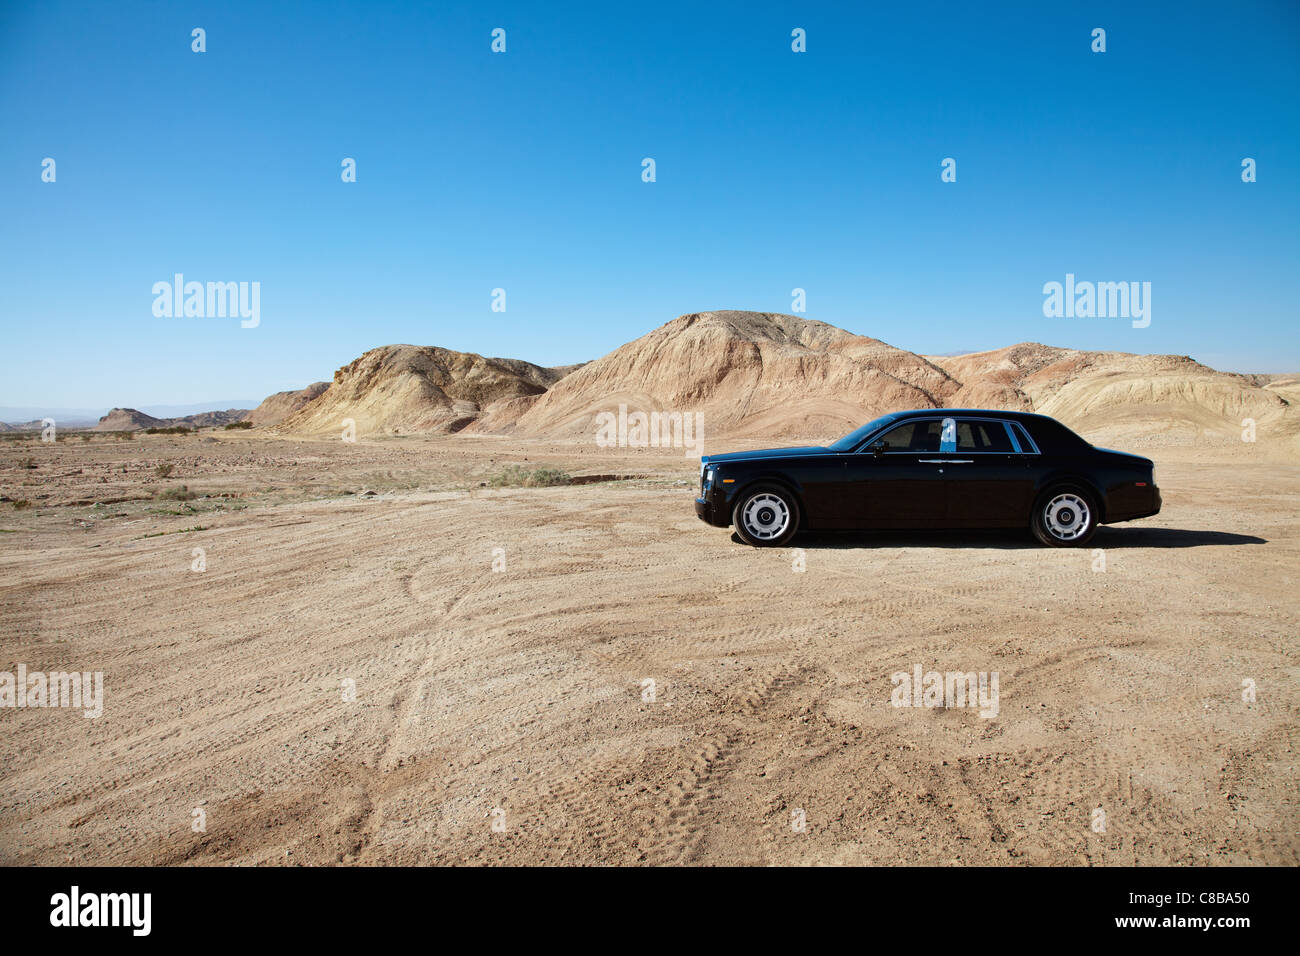 Luxury car parked on unpaved road near mountains - Stock Image